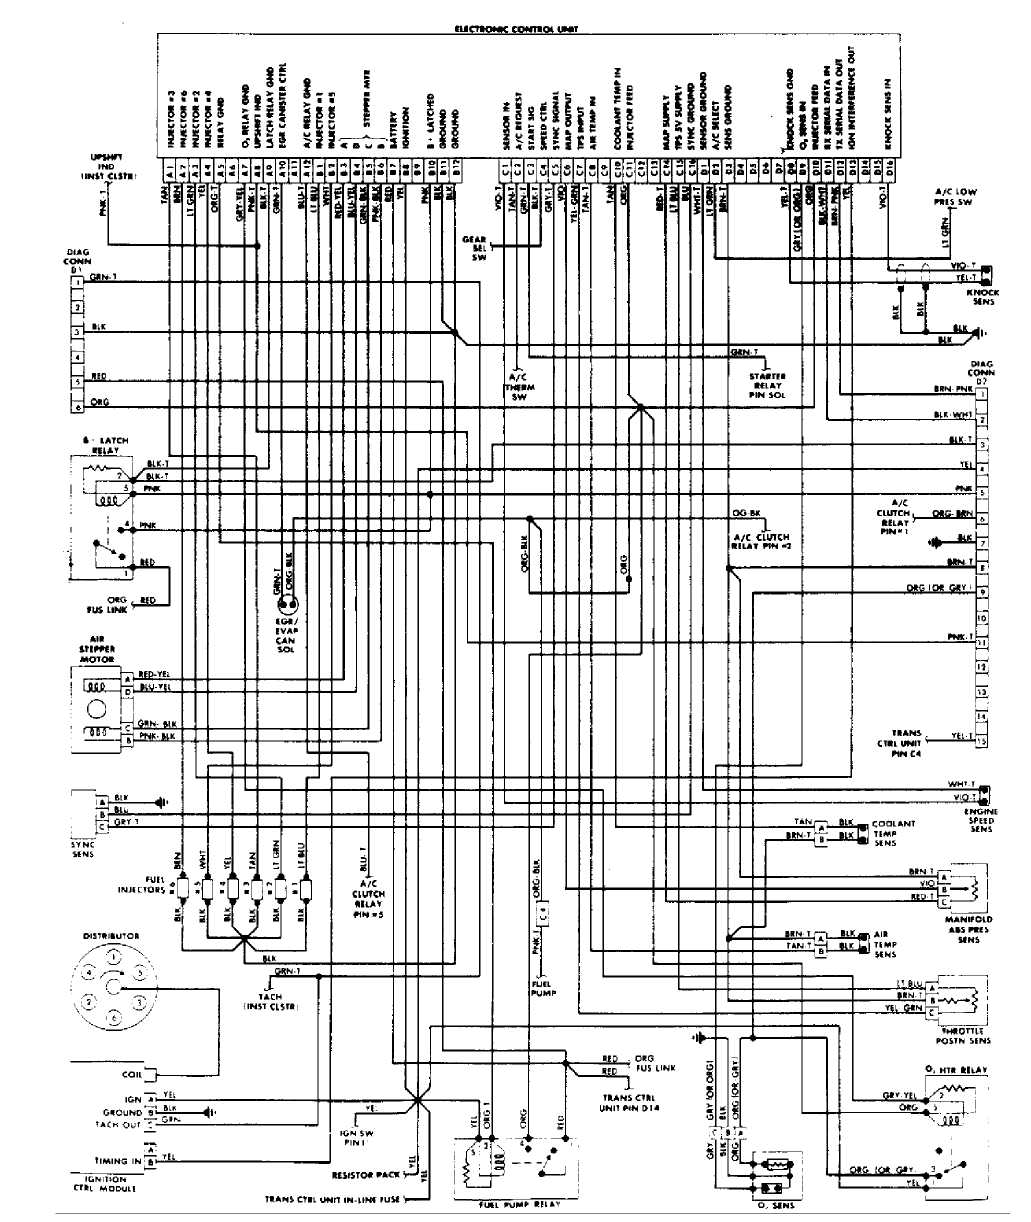 caterpillar c15 fuel injector wiring diagram cat c13 sensor diagram - wiring diagram caterpillar c15 engine brake wiring diagram